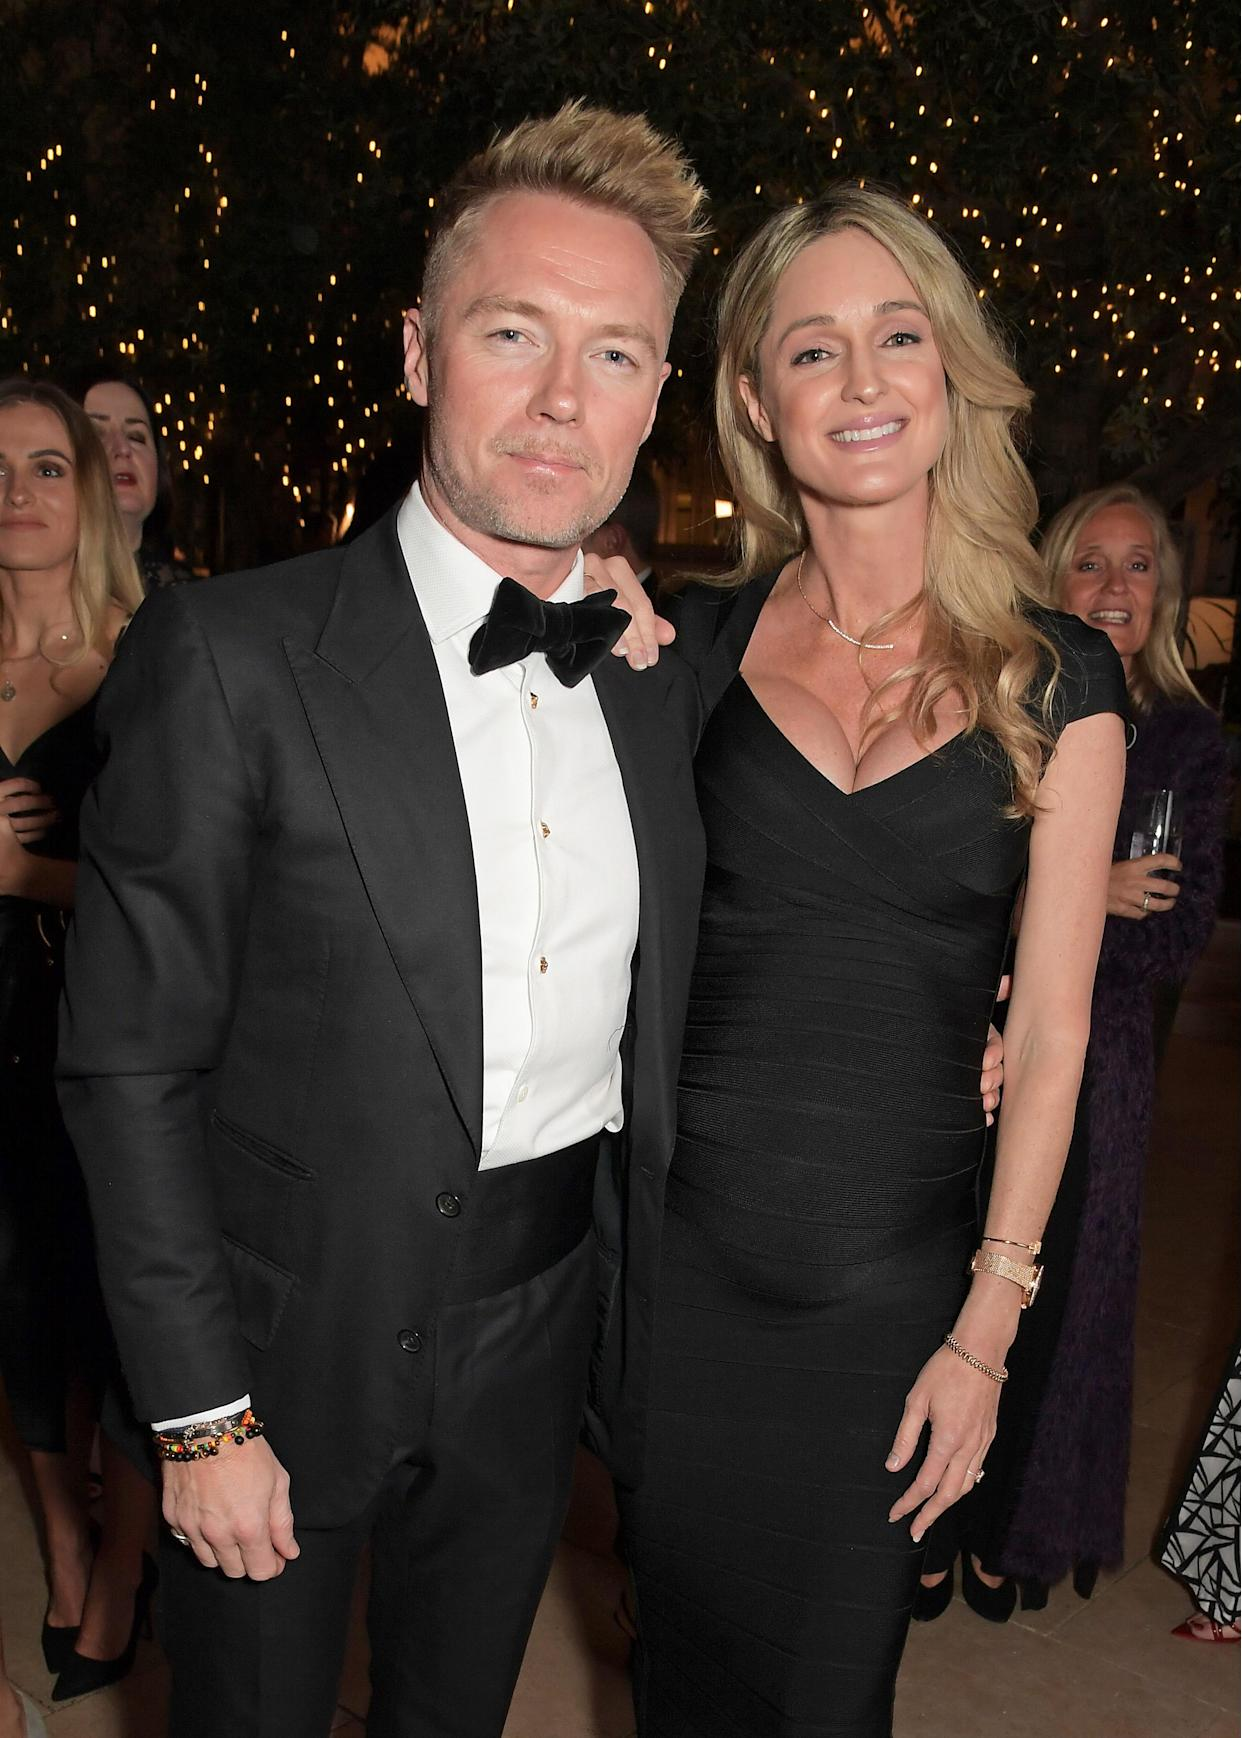 LONDON, ENGLAND - FEBRUARY 25: Ronan Keating (L) and Storm Keating attend the Positive Luxury Awards 2020 on February 25, 2020 in London, England. (Photo by David M. Benett/Dave Benett/Getty Images for Positive Luxury)